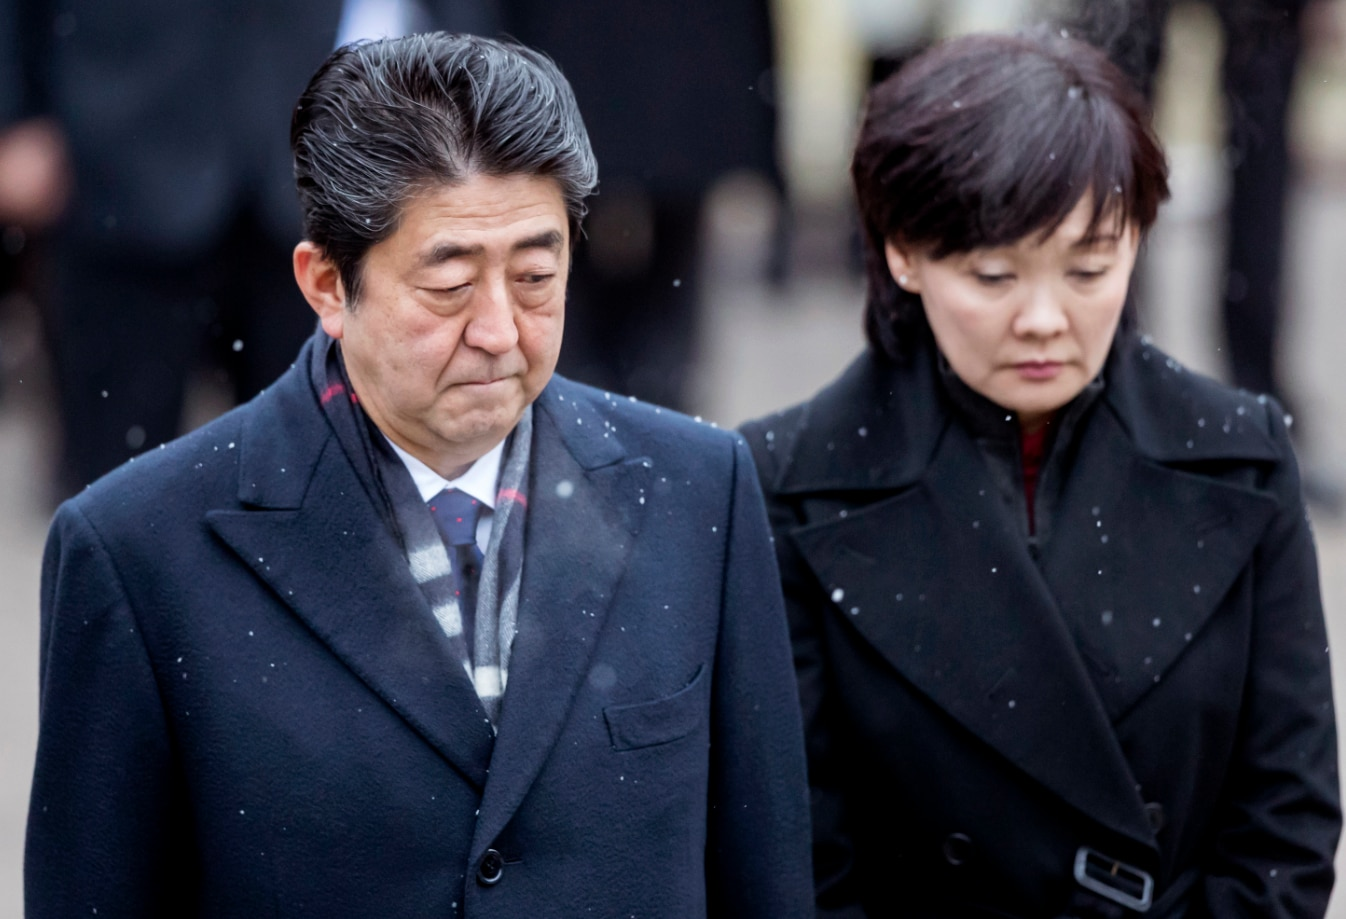 Japanese Prime Minsiter Shinzo Abe and his wife, Akie, have been embroiled in a land sale scandal.